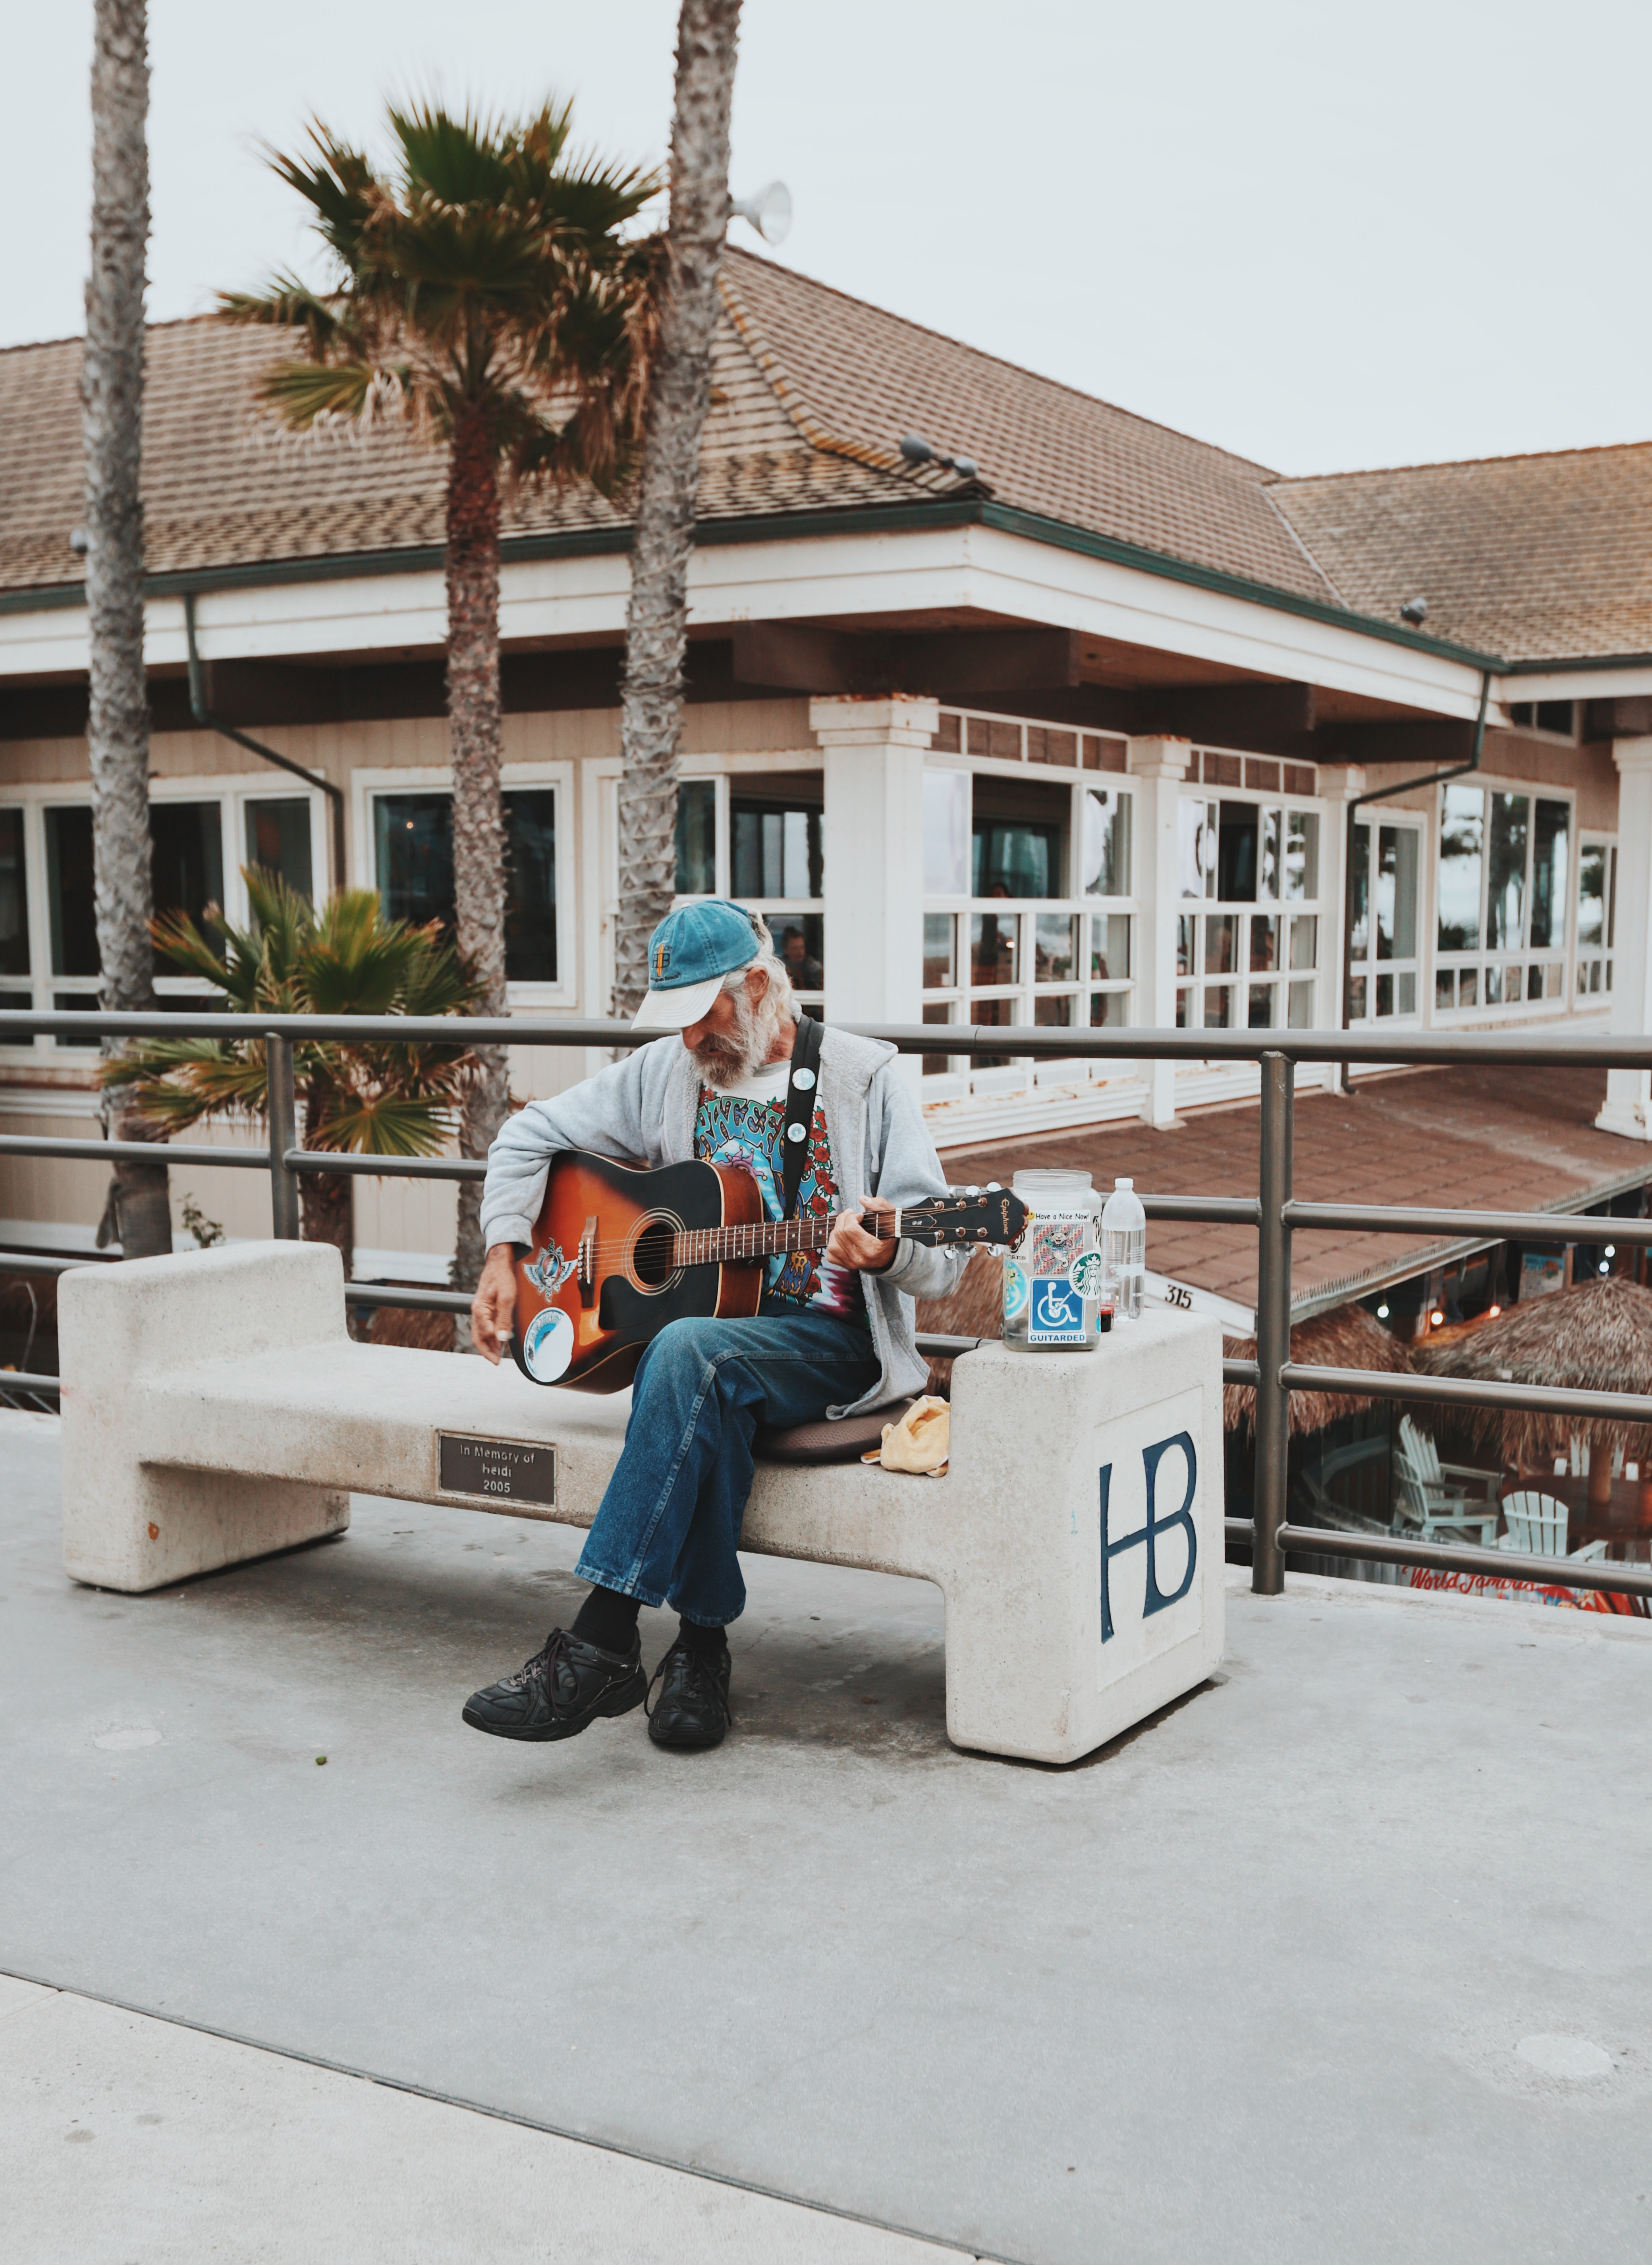 man sitting on outdoor bench playing guitar during daytime